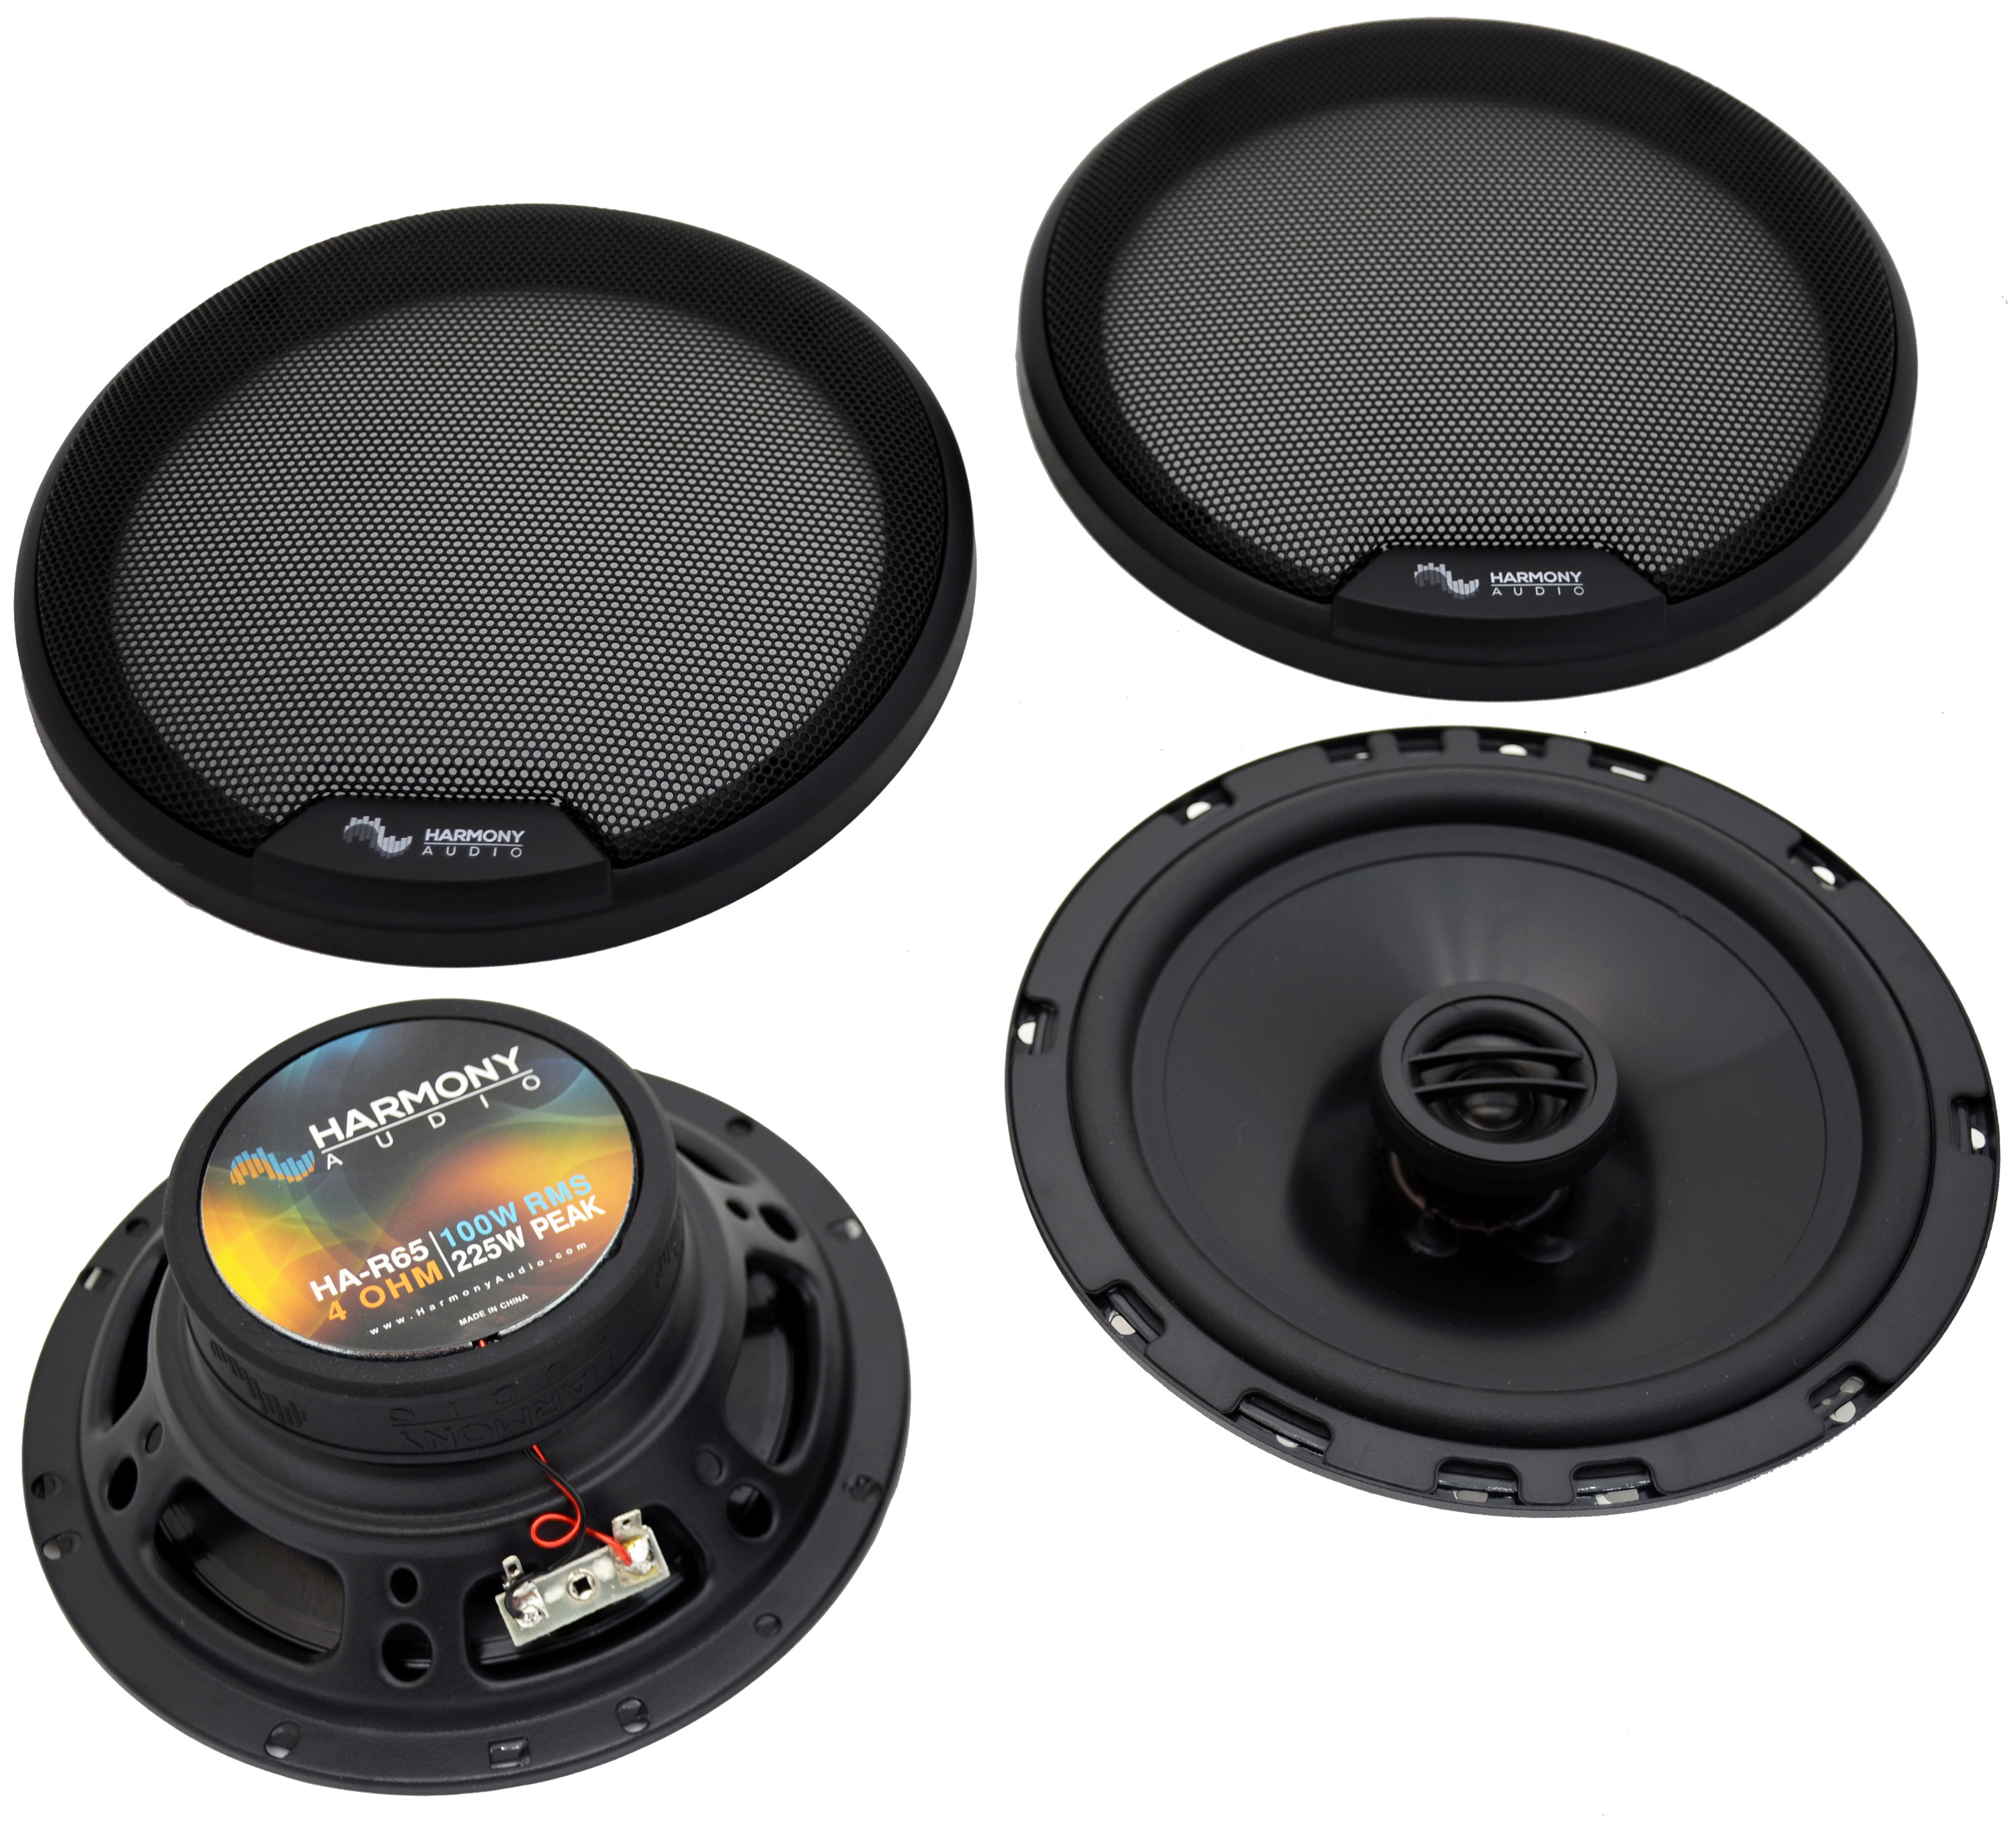 Fits Lexus ES 330 2004-2006 Rear Deck Replacement Harmony HA-R65 Speakers New